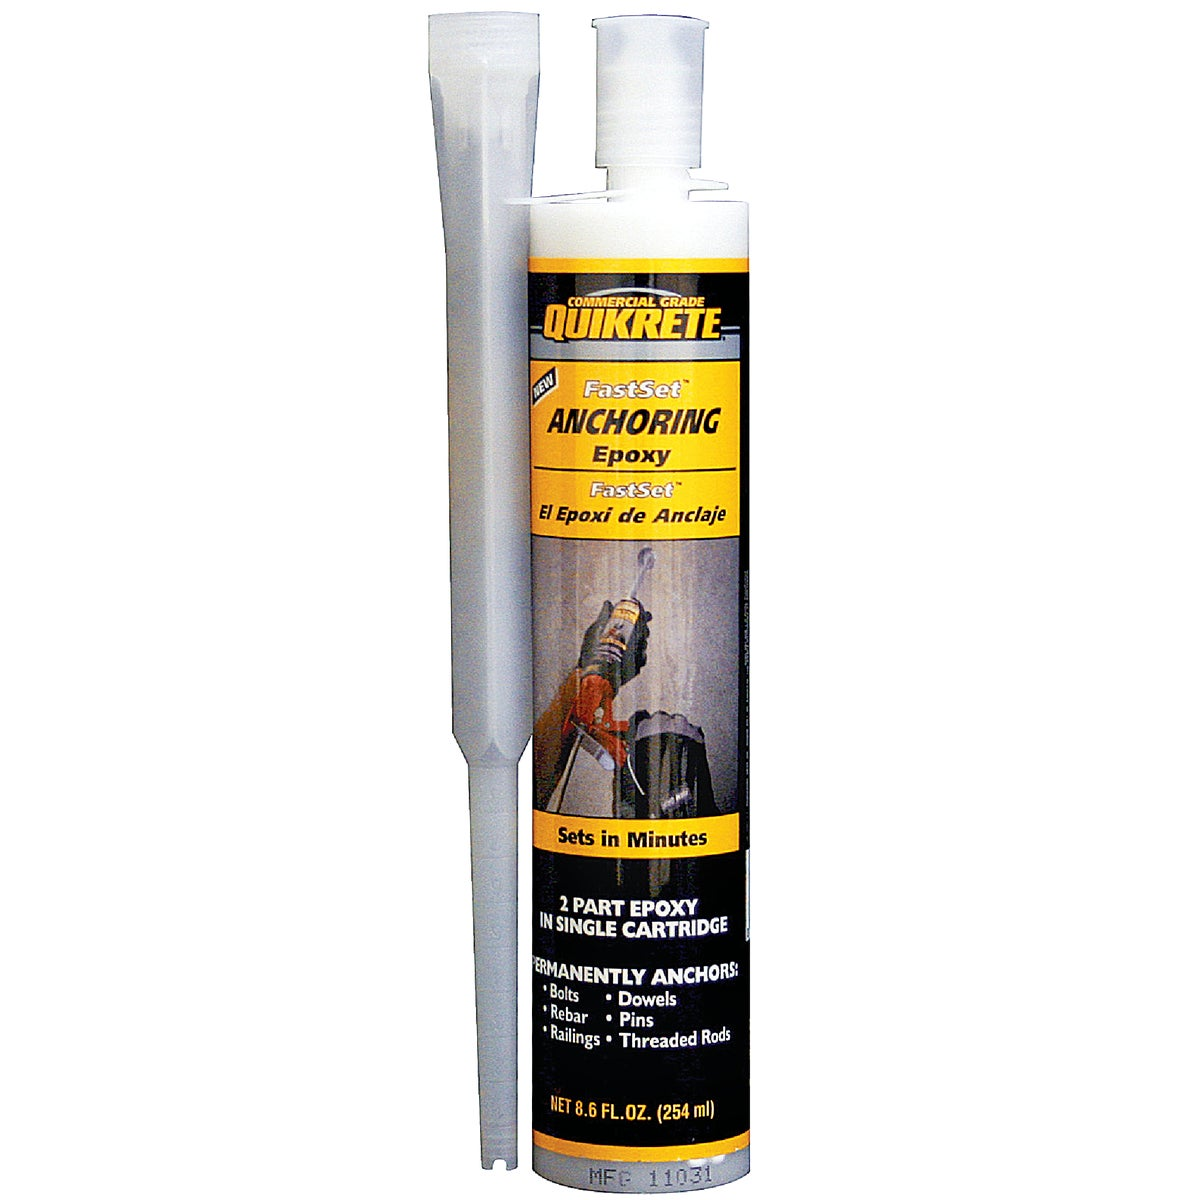 8.6OZ FS ANCHORING EPOXY - 8620-30 by Quikrete Co